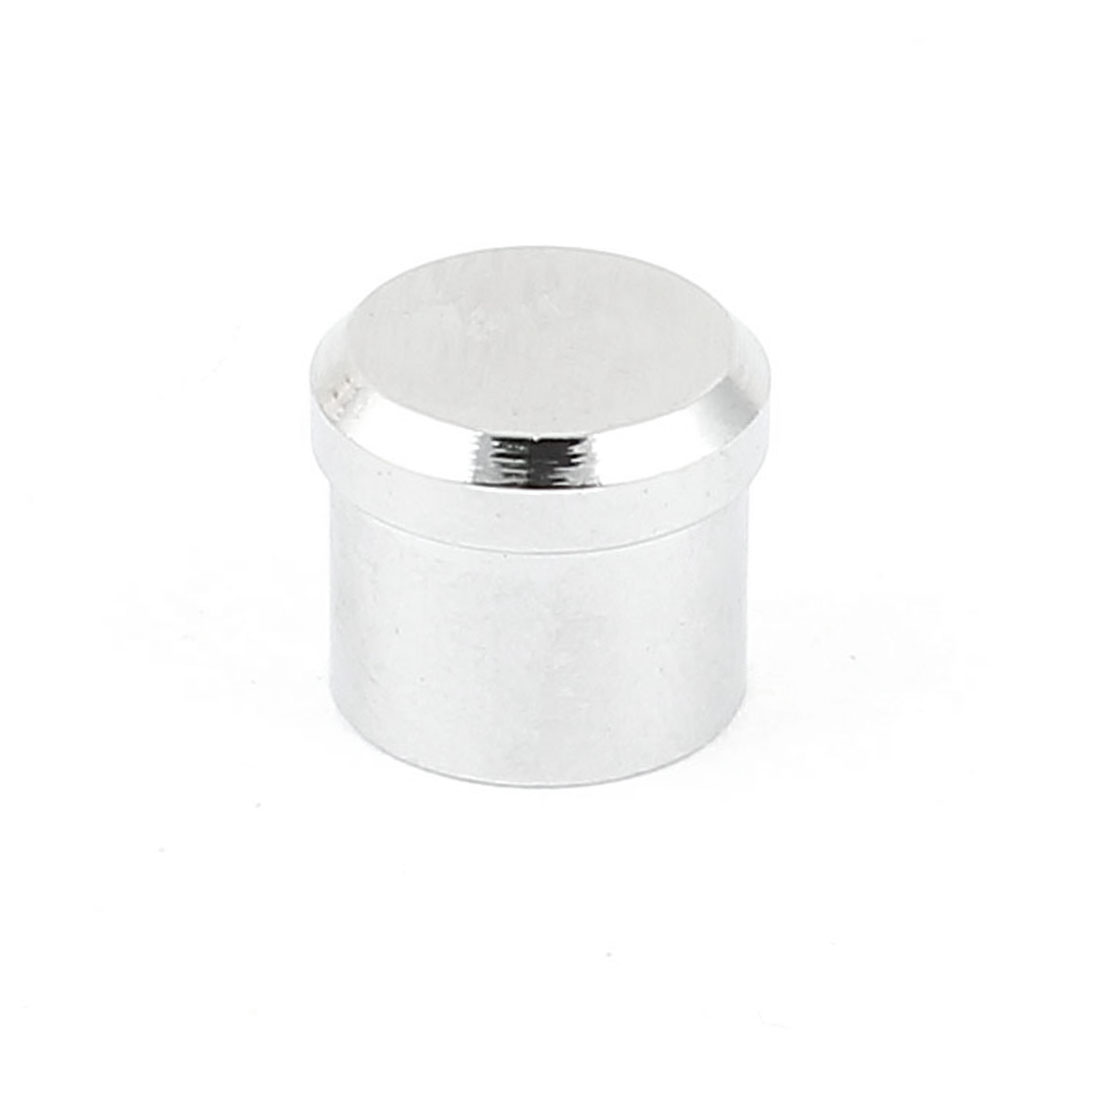 Silver Tone Metal RCA Protector Cap Shielding Dust Proof Cover